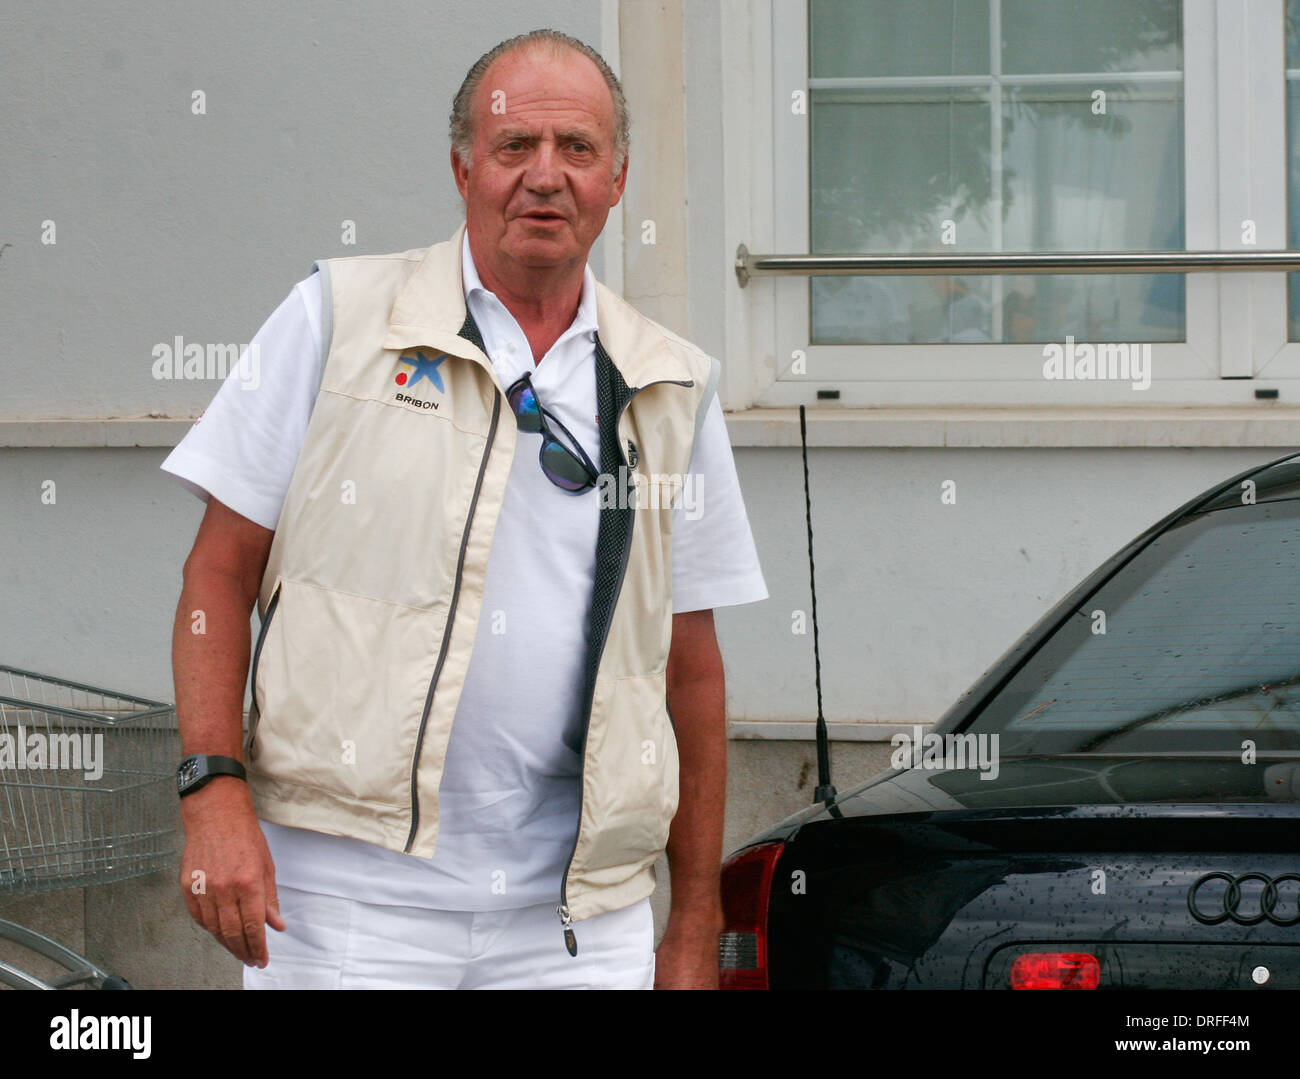 Spain´s royal King Juan Carlos seen in an event in the island of Mallorca, Spain - Stock Image